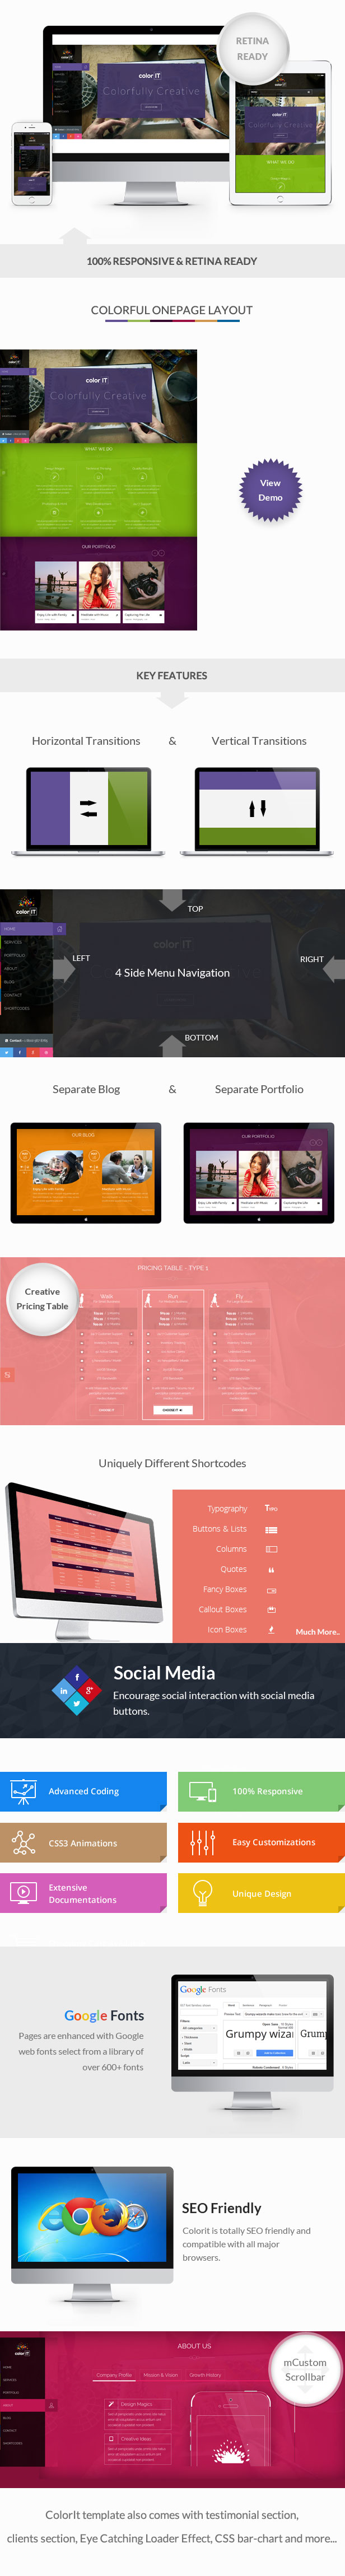 coloriT - Colorful Single Page HTML Template - 1